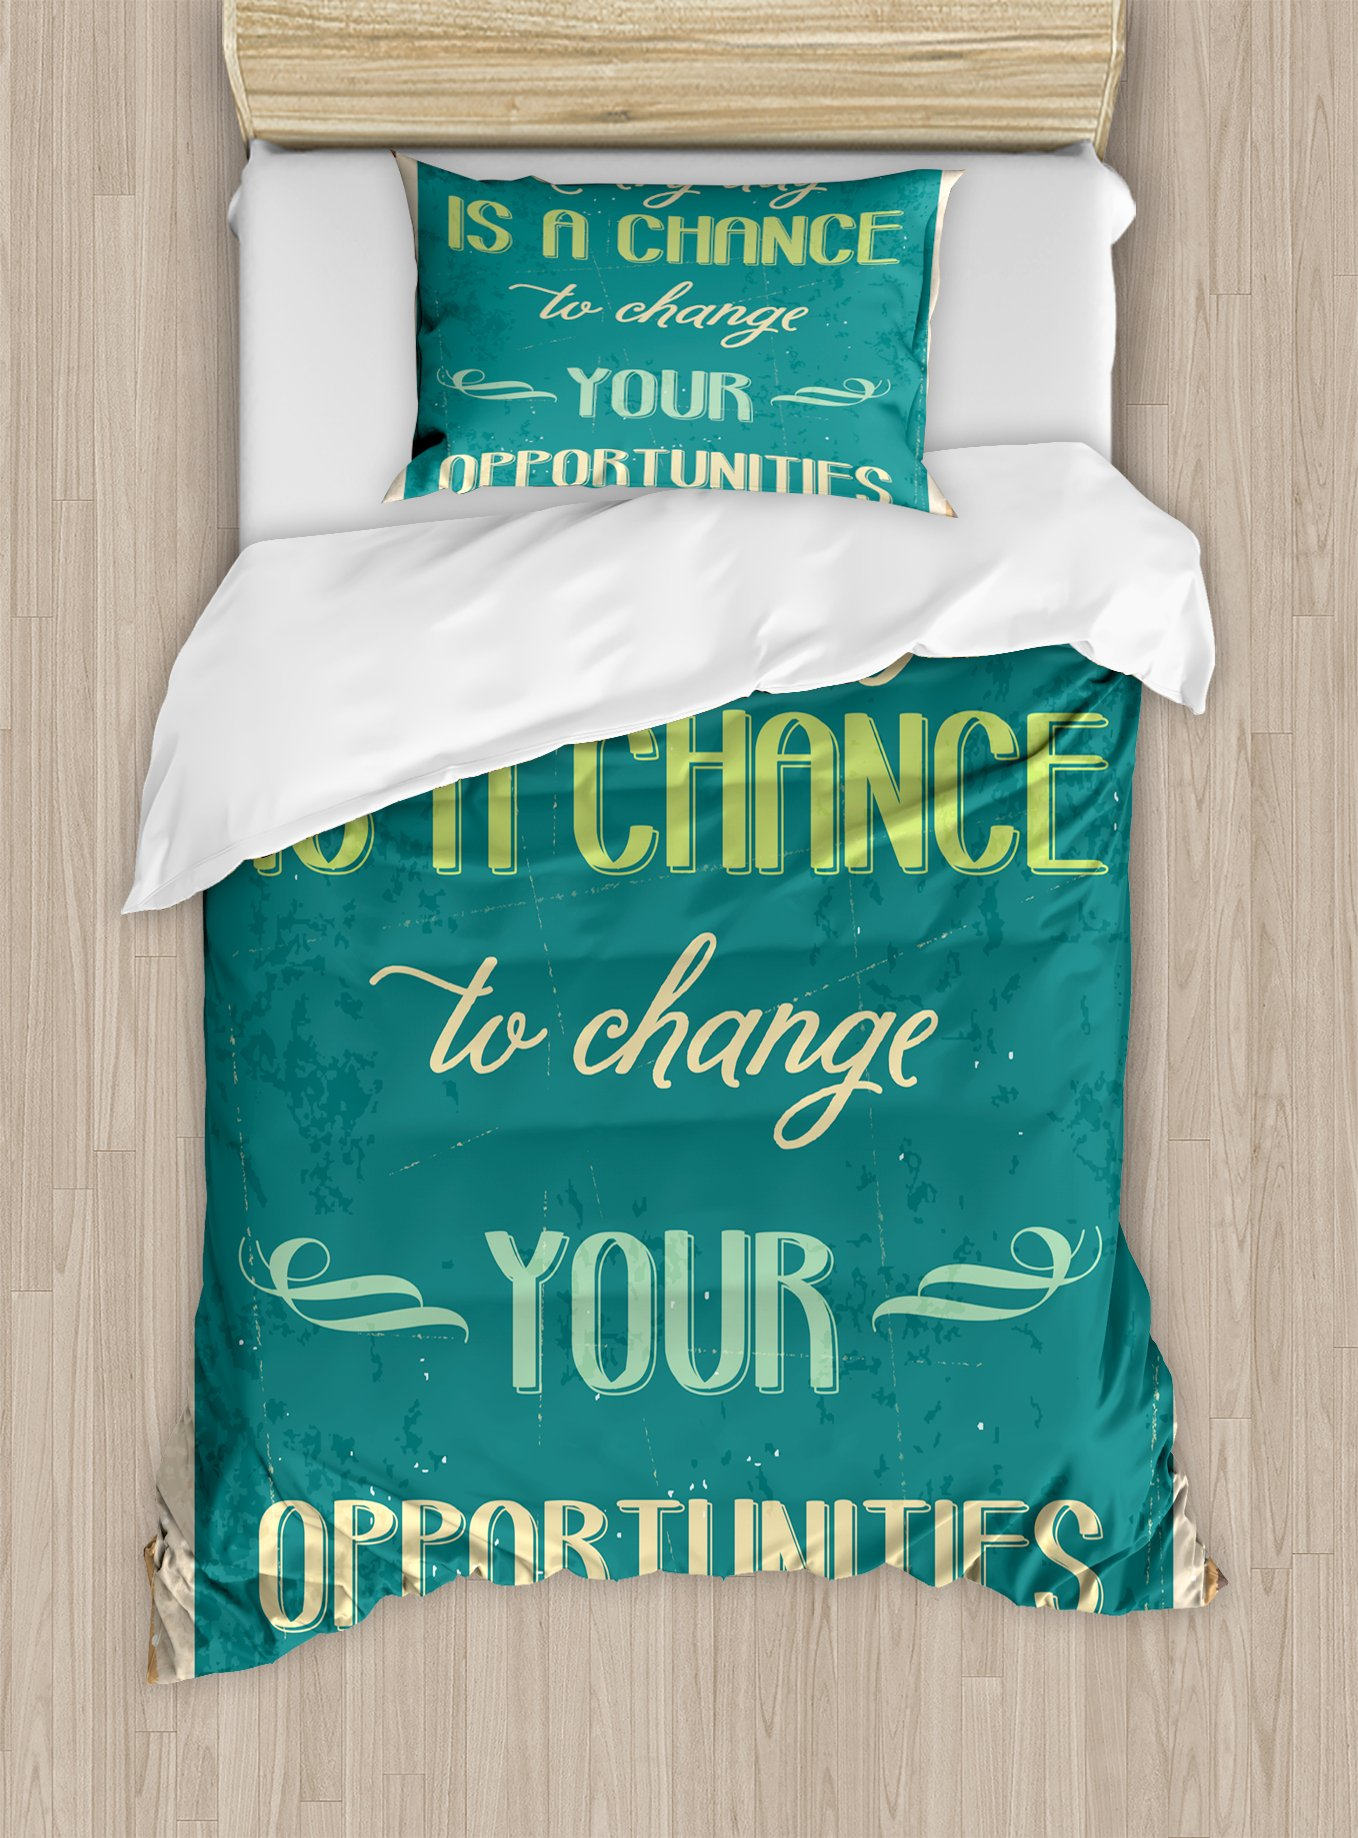 Ambesonne Lifestyle Duvet Cover Set Twin Size, Every Day is a Chance to Change Your Opportunities Quote Retro Poster Print, Decorative 2 Piece Bedding Set with 1 Pillow Sham, Jade Green Tan by Ambesonne